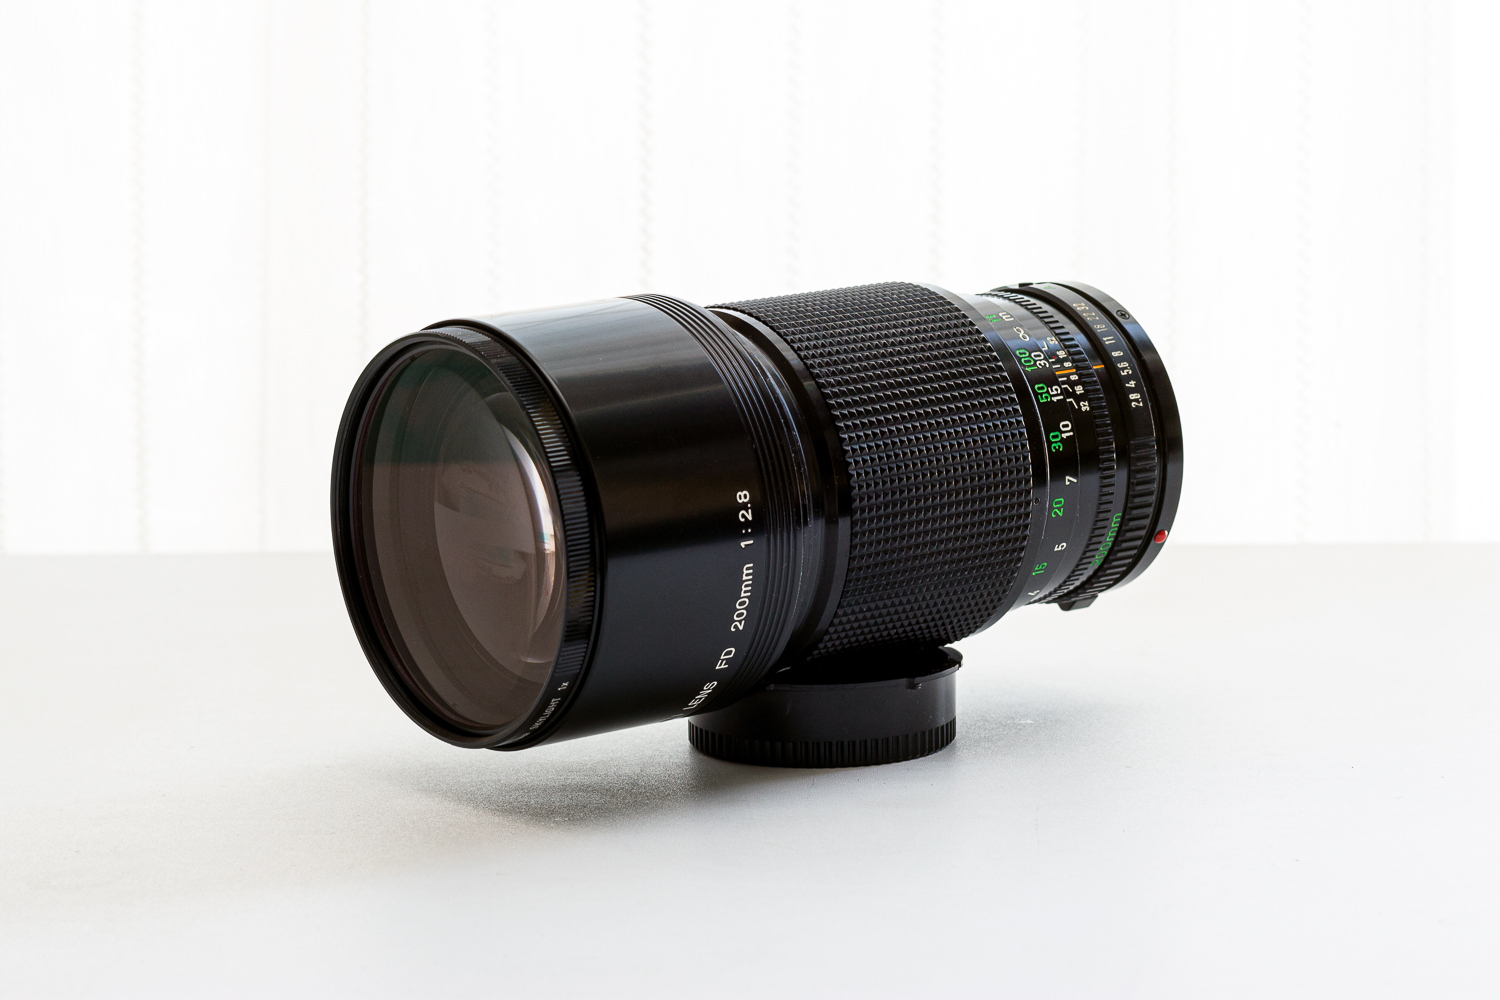 New FD200mm F2.8